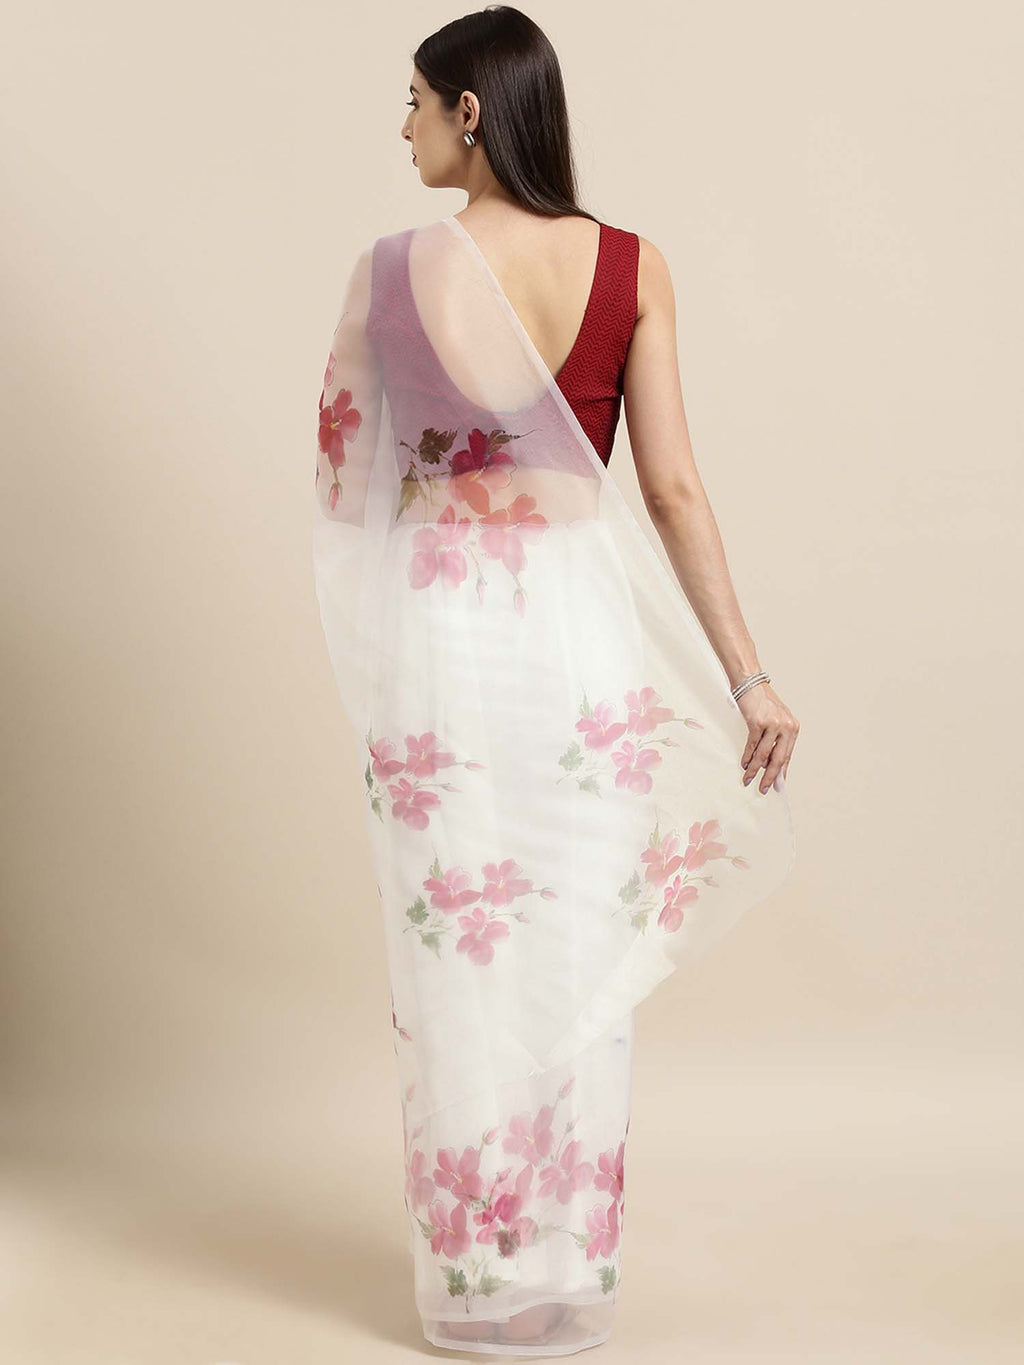 Off White and Maroon Floral Digital Print Organza Saree with Poly Dupion Blouse - Riviera Closet